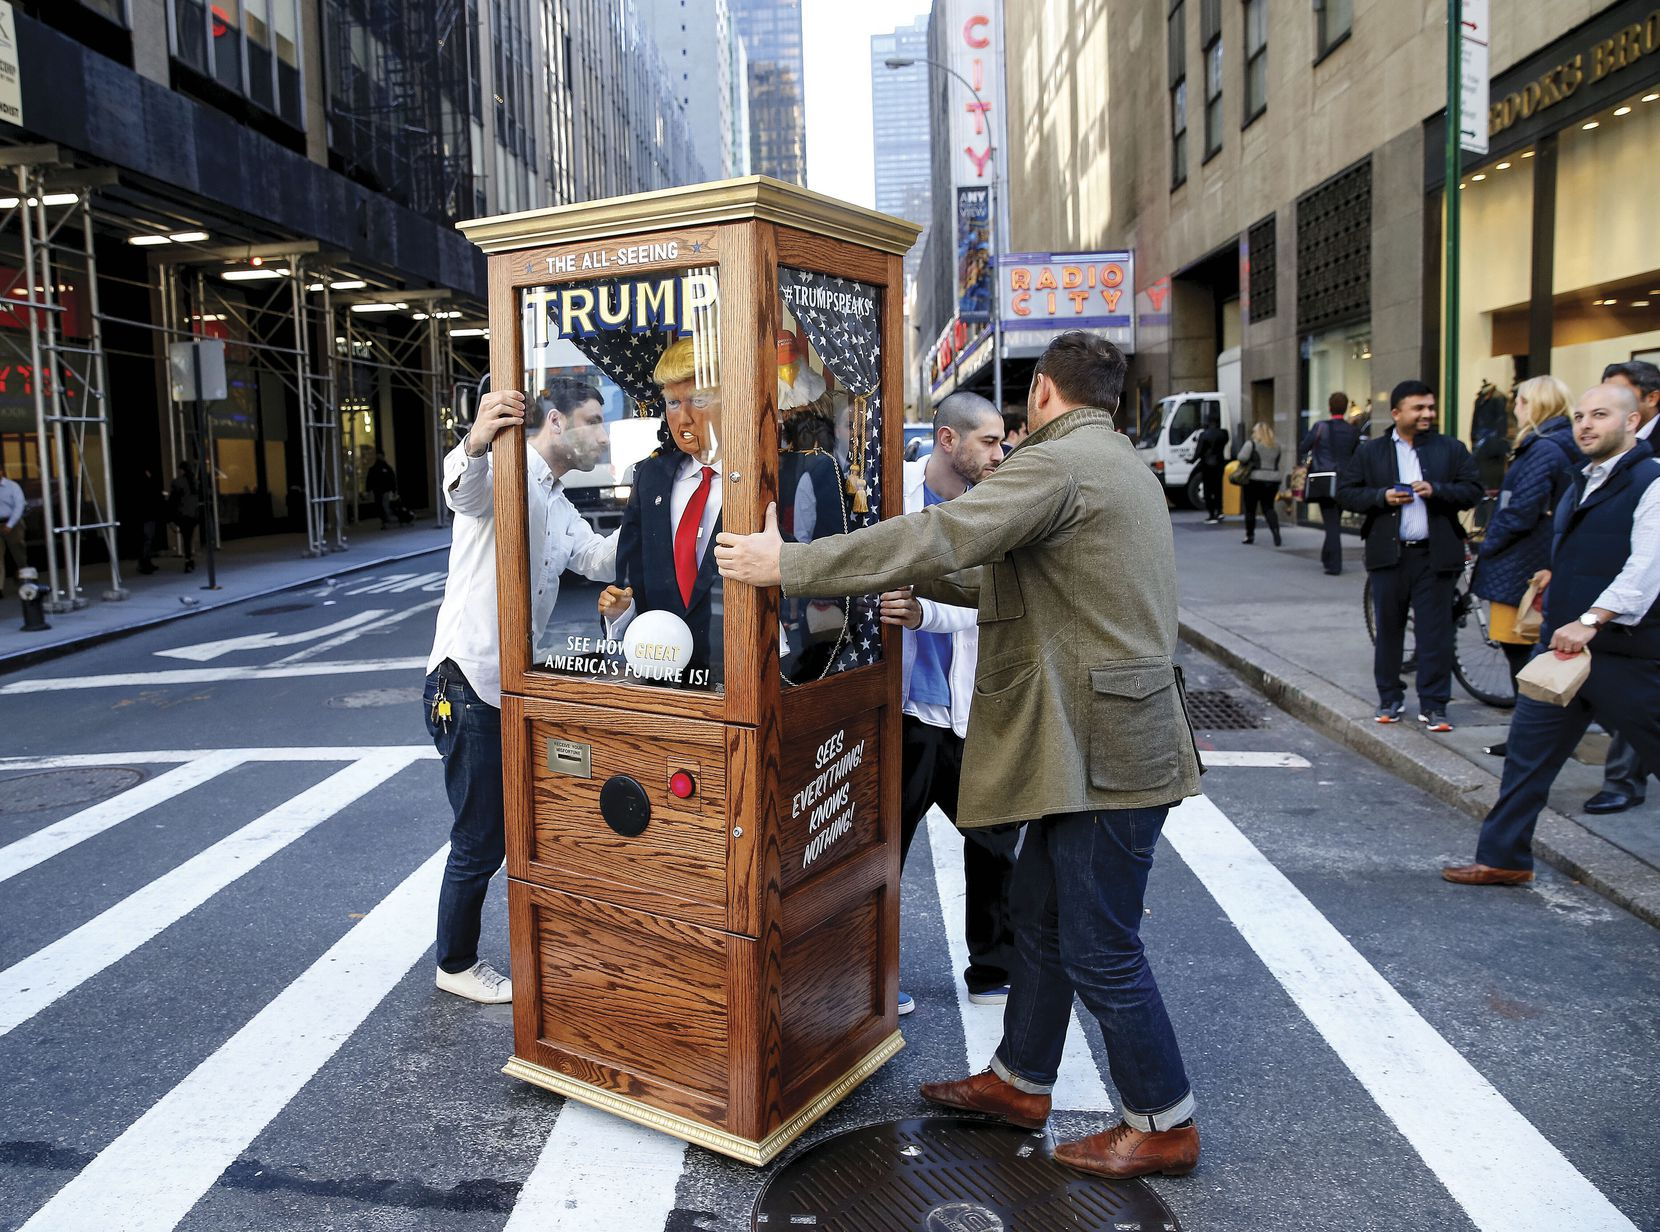 Artist Nathaniel Lawlor got some help from friend Jason Goodman as they pushed a fortune teller machine bearing Donald Trump'€™s image outside the Midtown Hilton in New York City on Nov. 8, 2016. When the red button is pushed, Trump's voice recites some of his famous and funny lines.